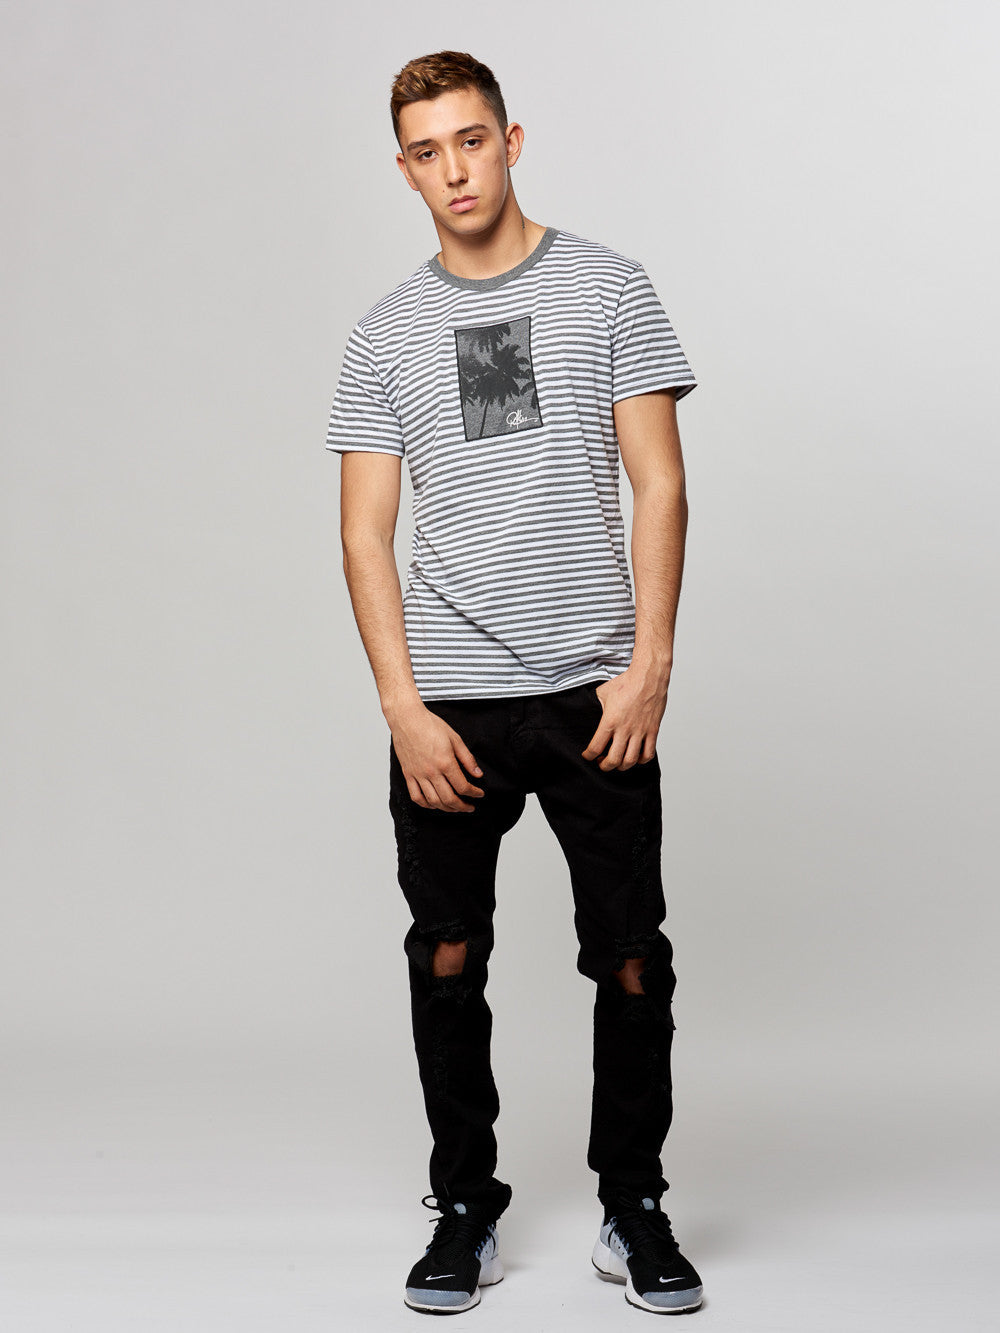 Young and Reckless Mens - Tees - Graphic Tee Shoreline Tee- White/Heather